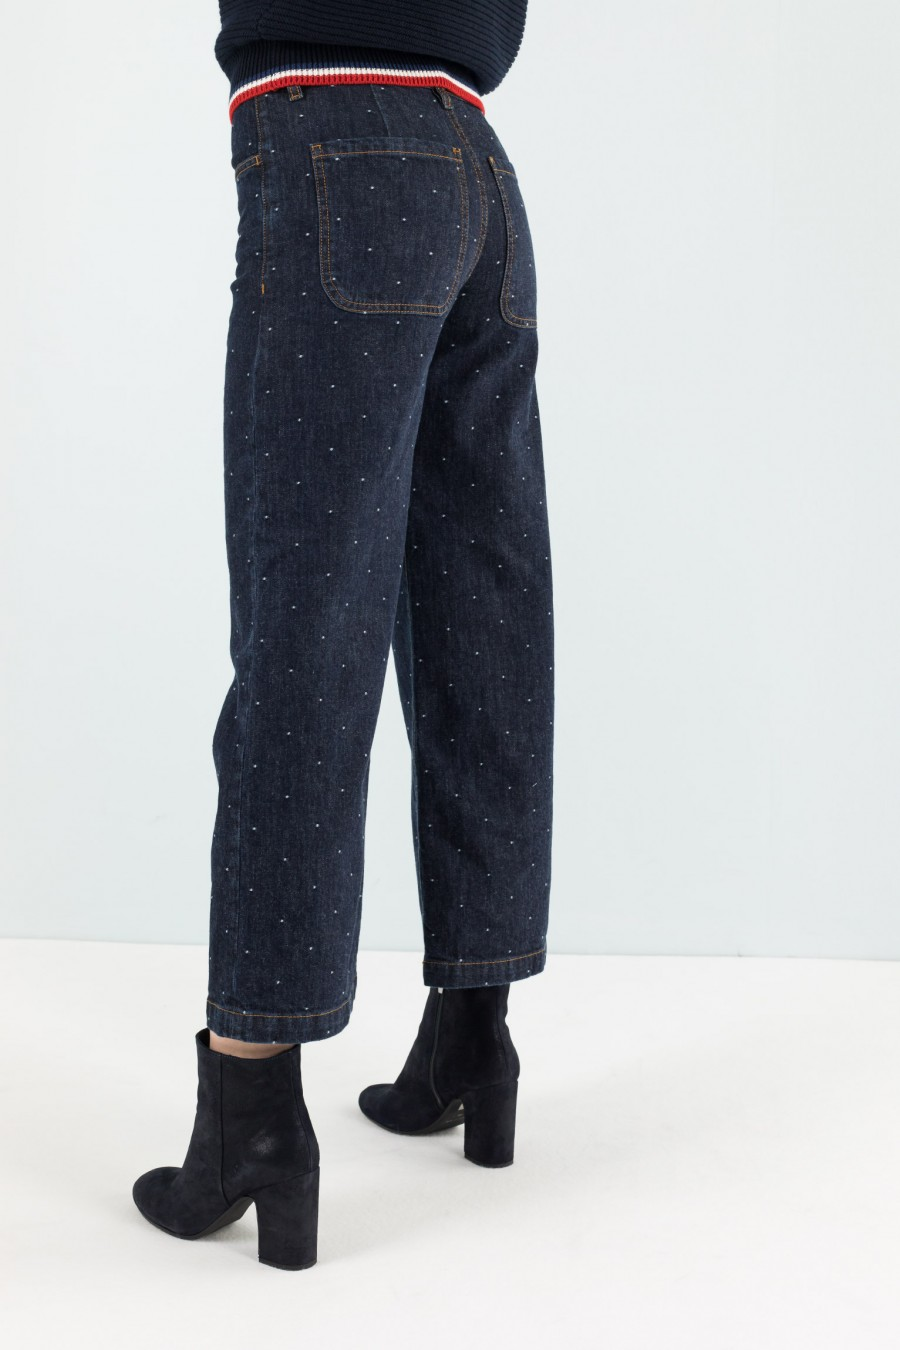 Lazzari denim culotte fall winter